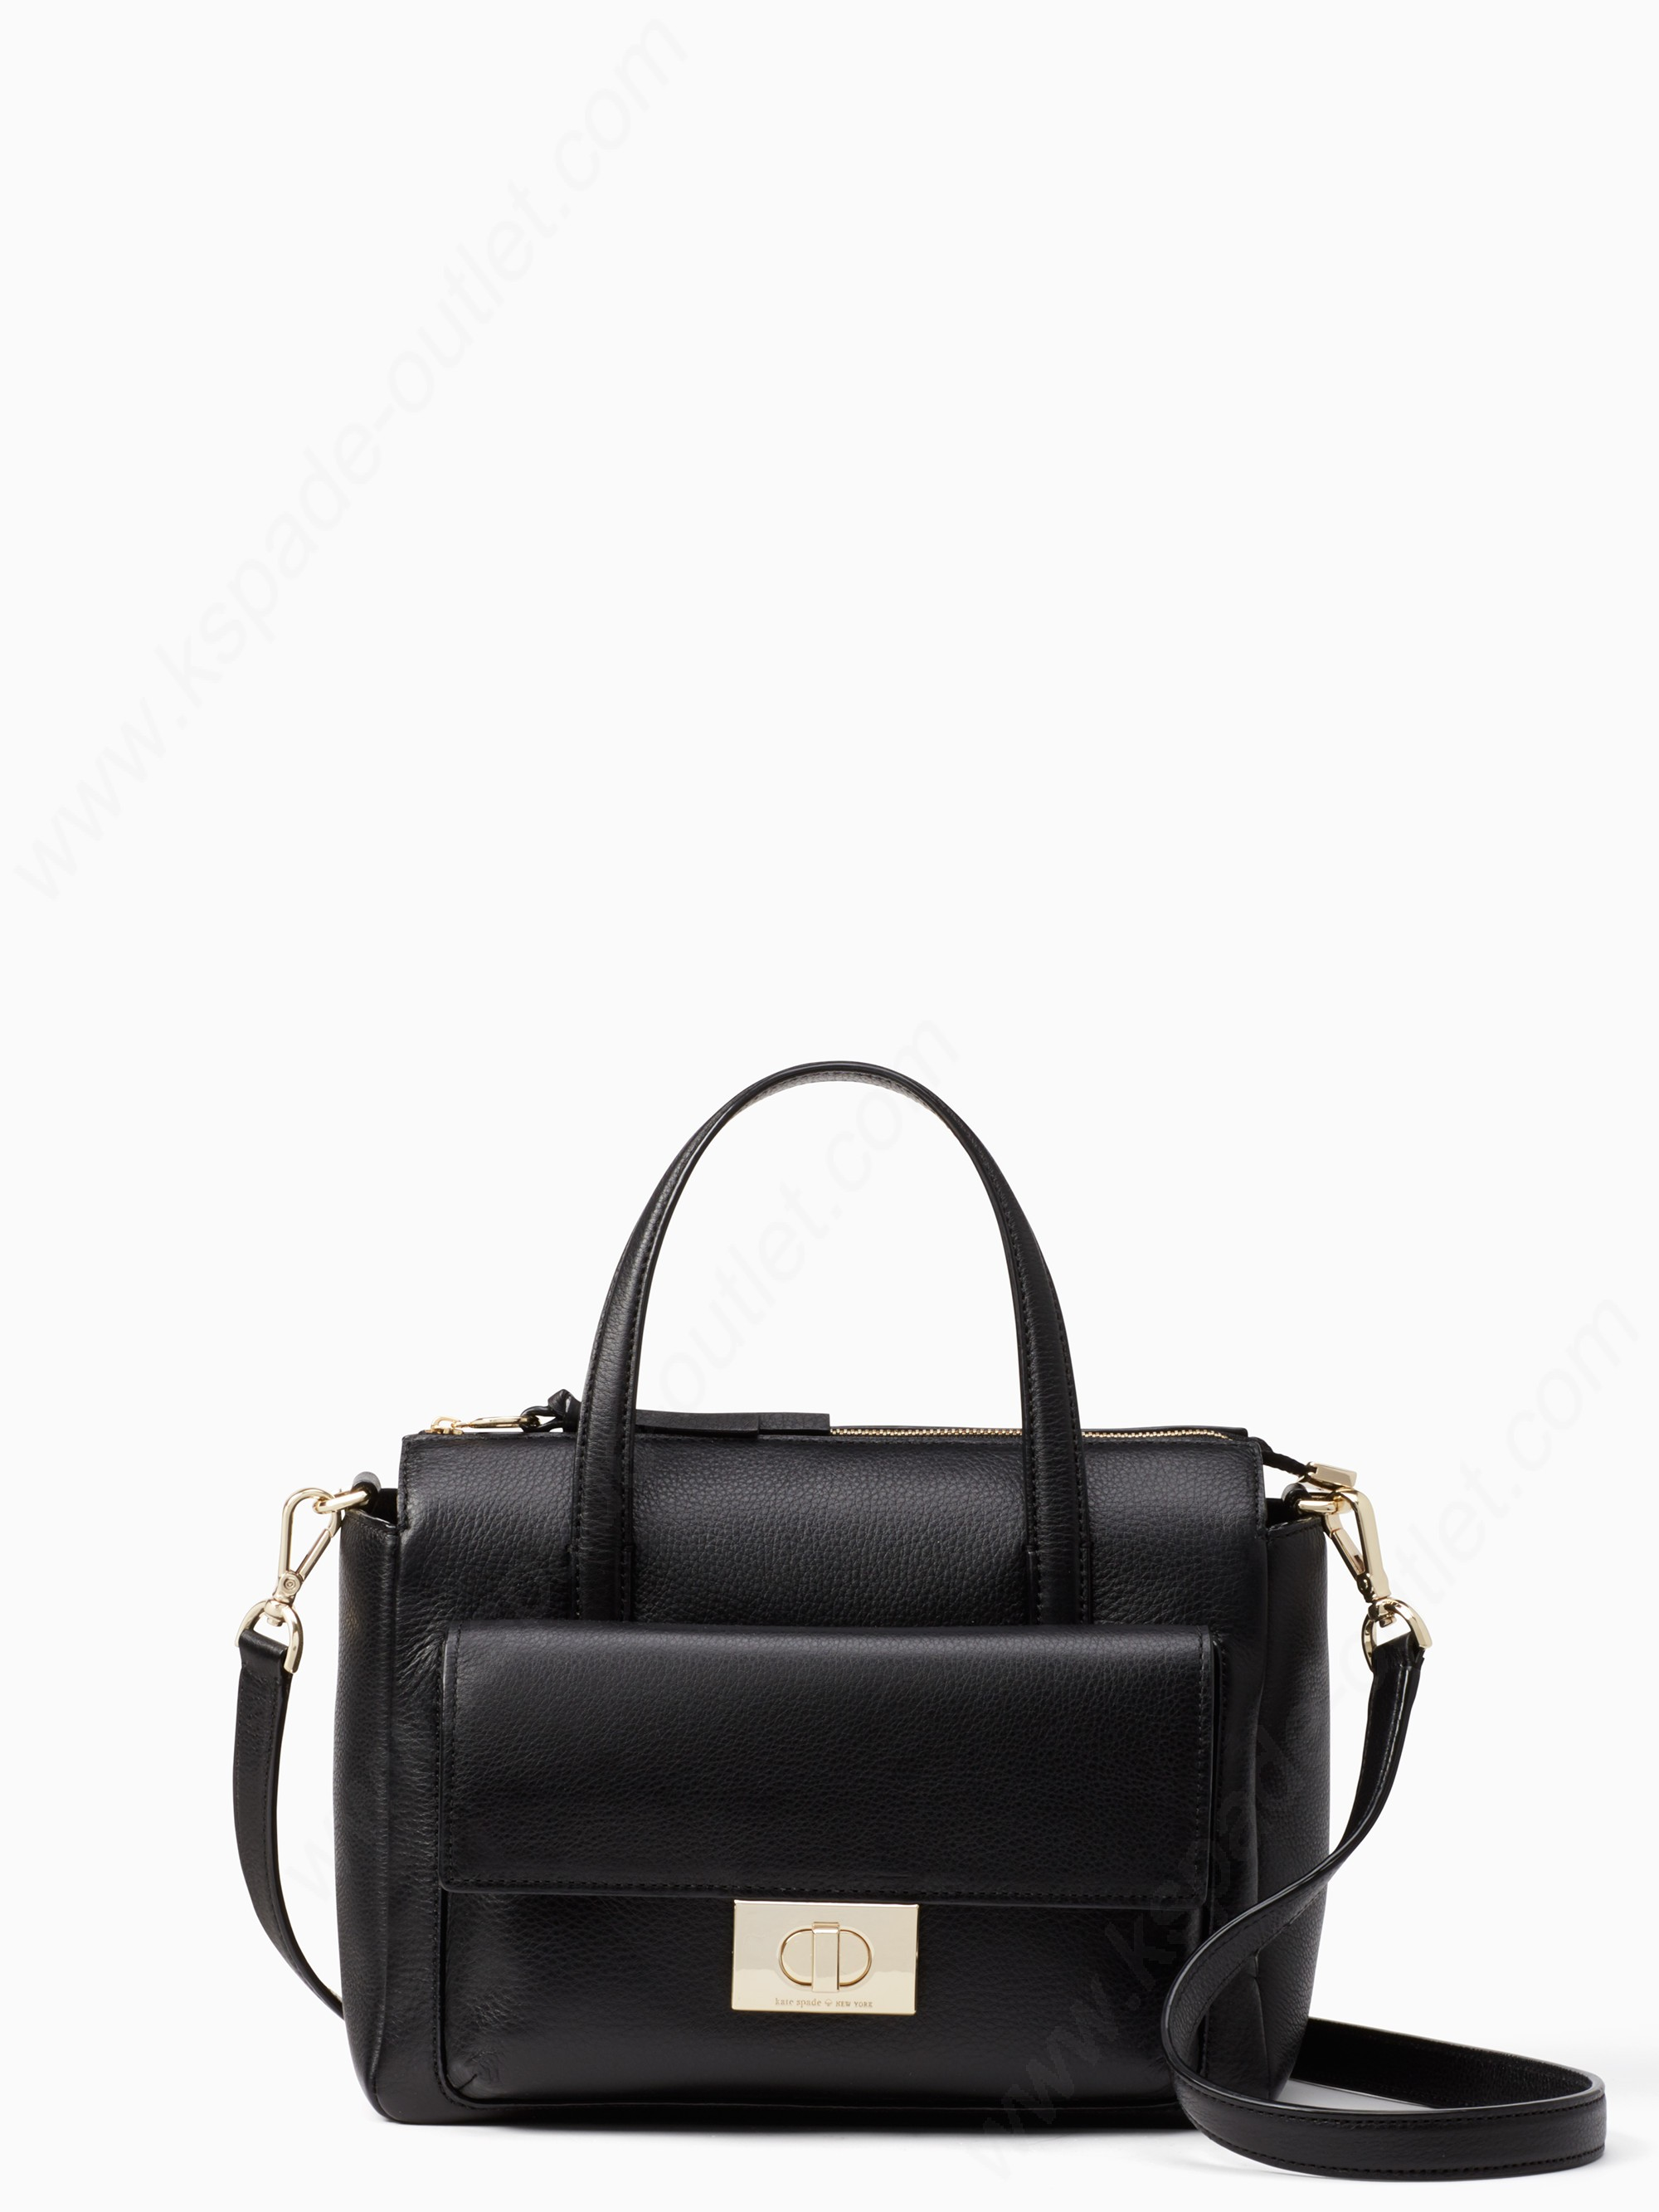 Kate Spade Lady Bag Greenwood Place Meghan - Kate Spade Lady Bag Greenwood Place Meghan